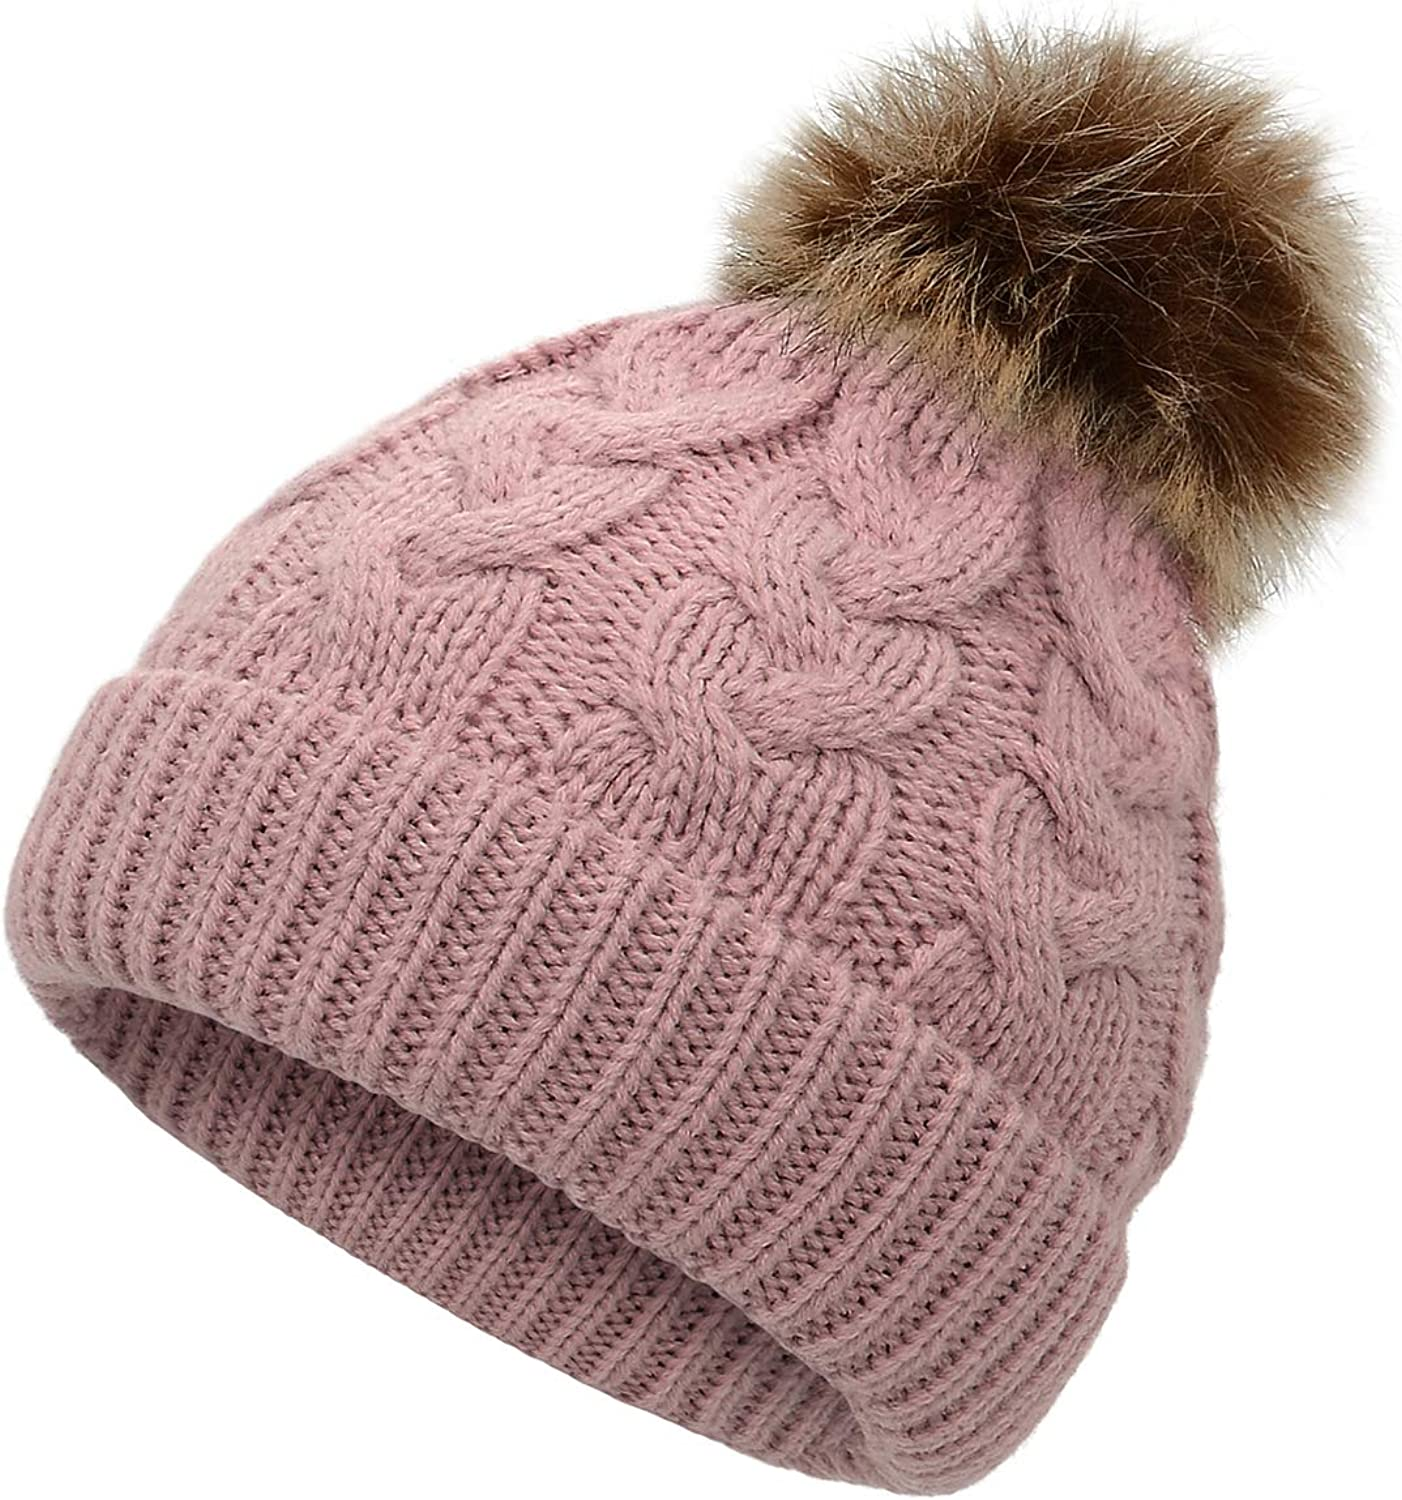 Baby Toddler Kids Girl Boys Faux Fur Ball Beanie Knit Cap Warm Hat Winter Pompom